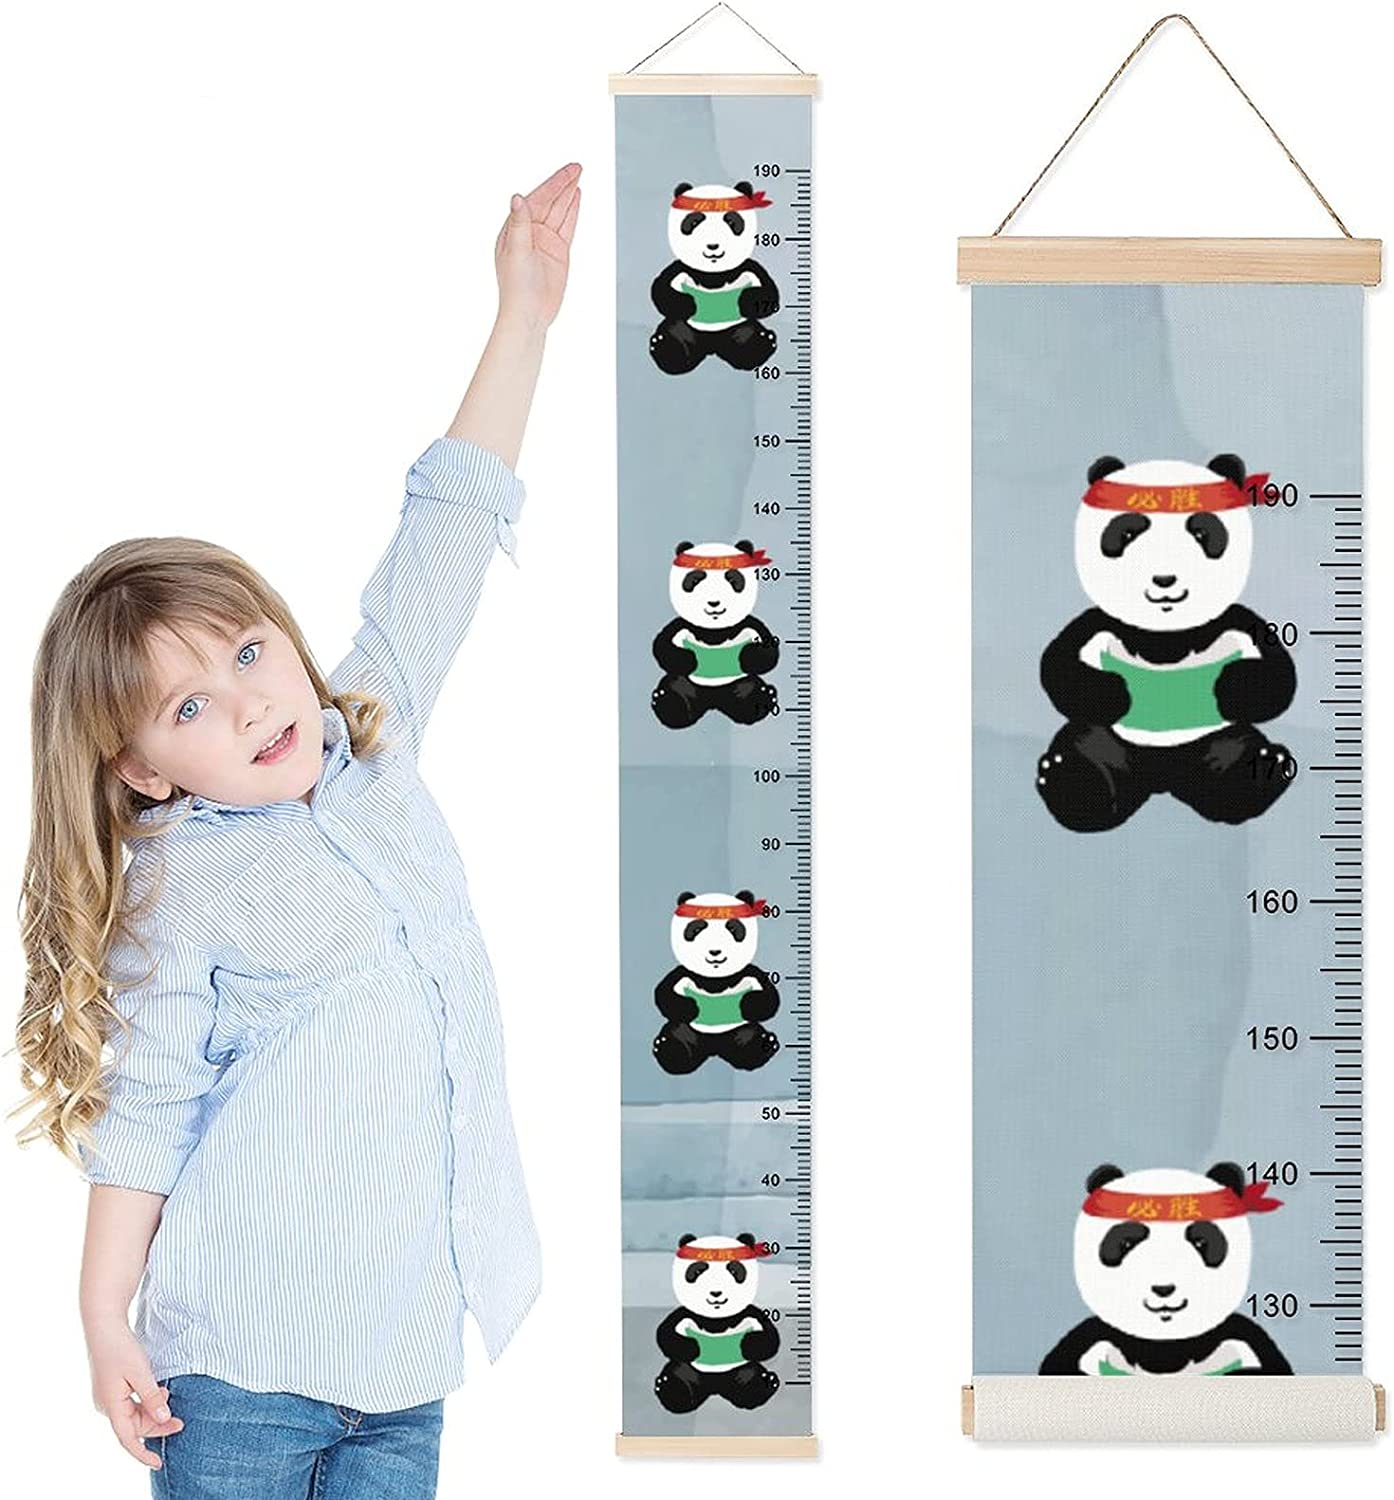 DKISEE Baby NEW Growth Chart Child f Low price Wall Hanging Height Ruler